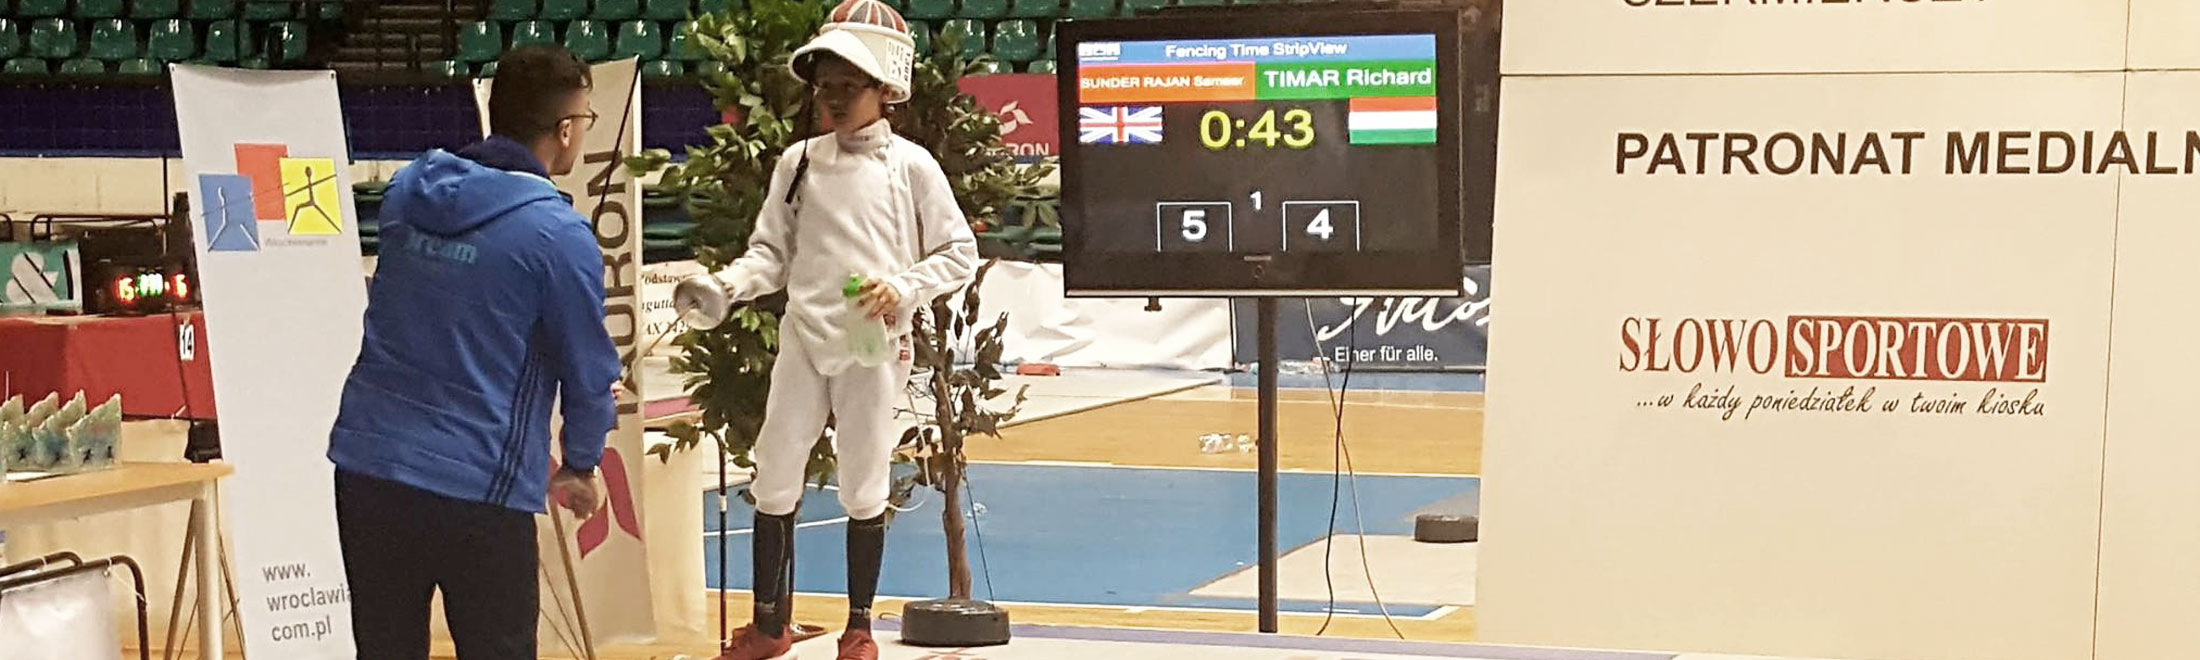 dream fencing international epee competition.